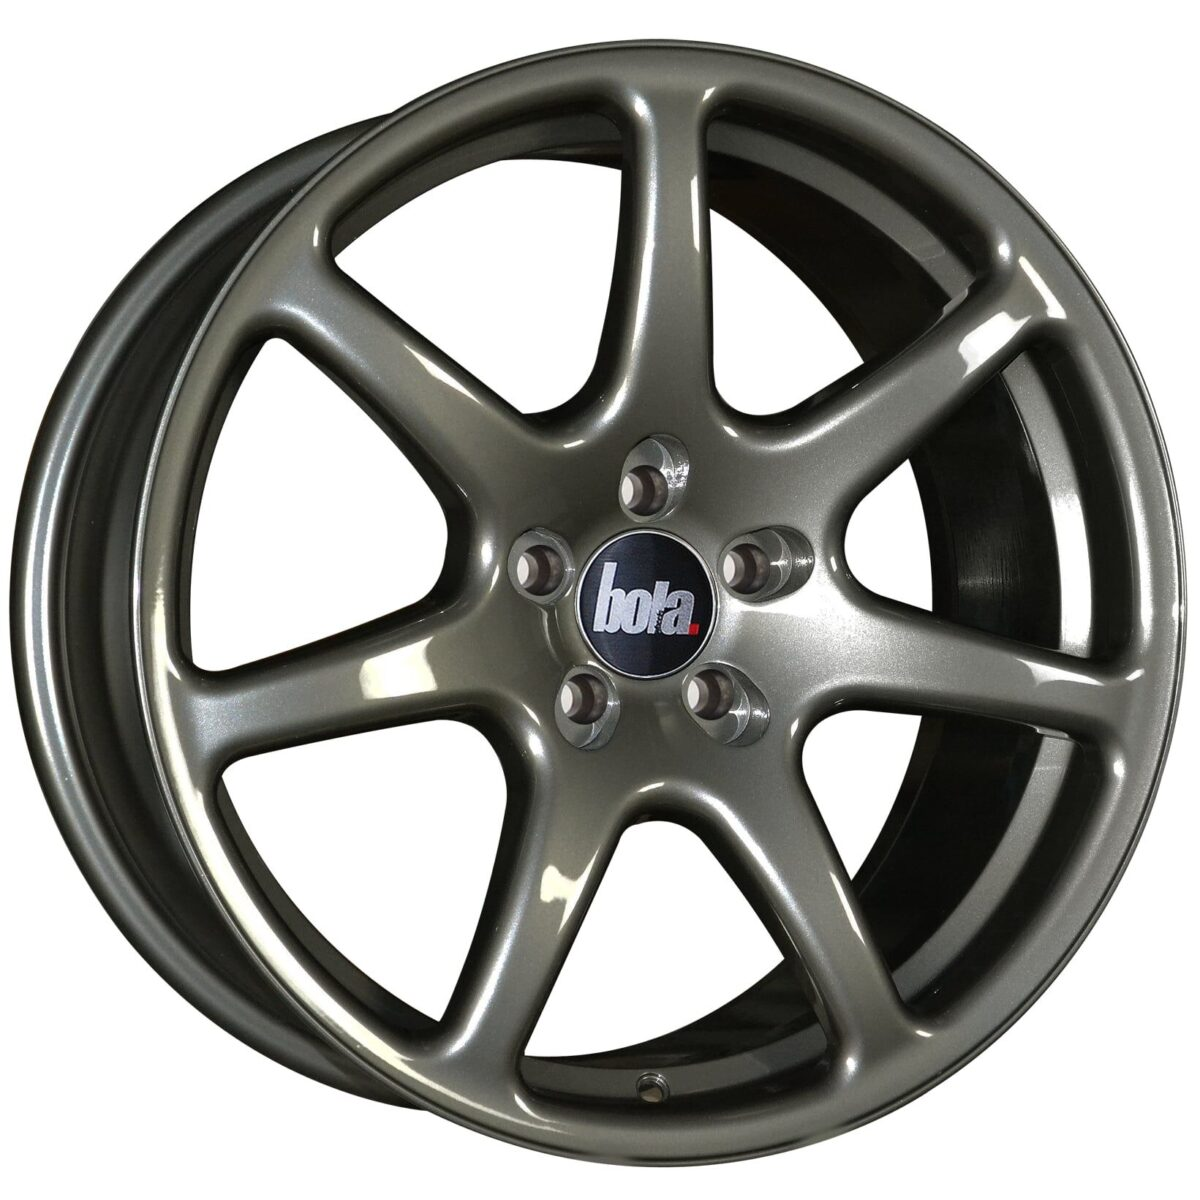 "18"" BOLA B7 Wheels - Gloss Gunmetal - VW / Audi / Mercedes - 5x112"